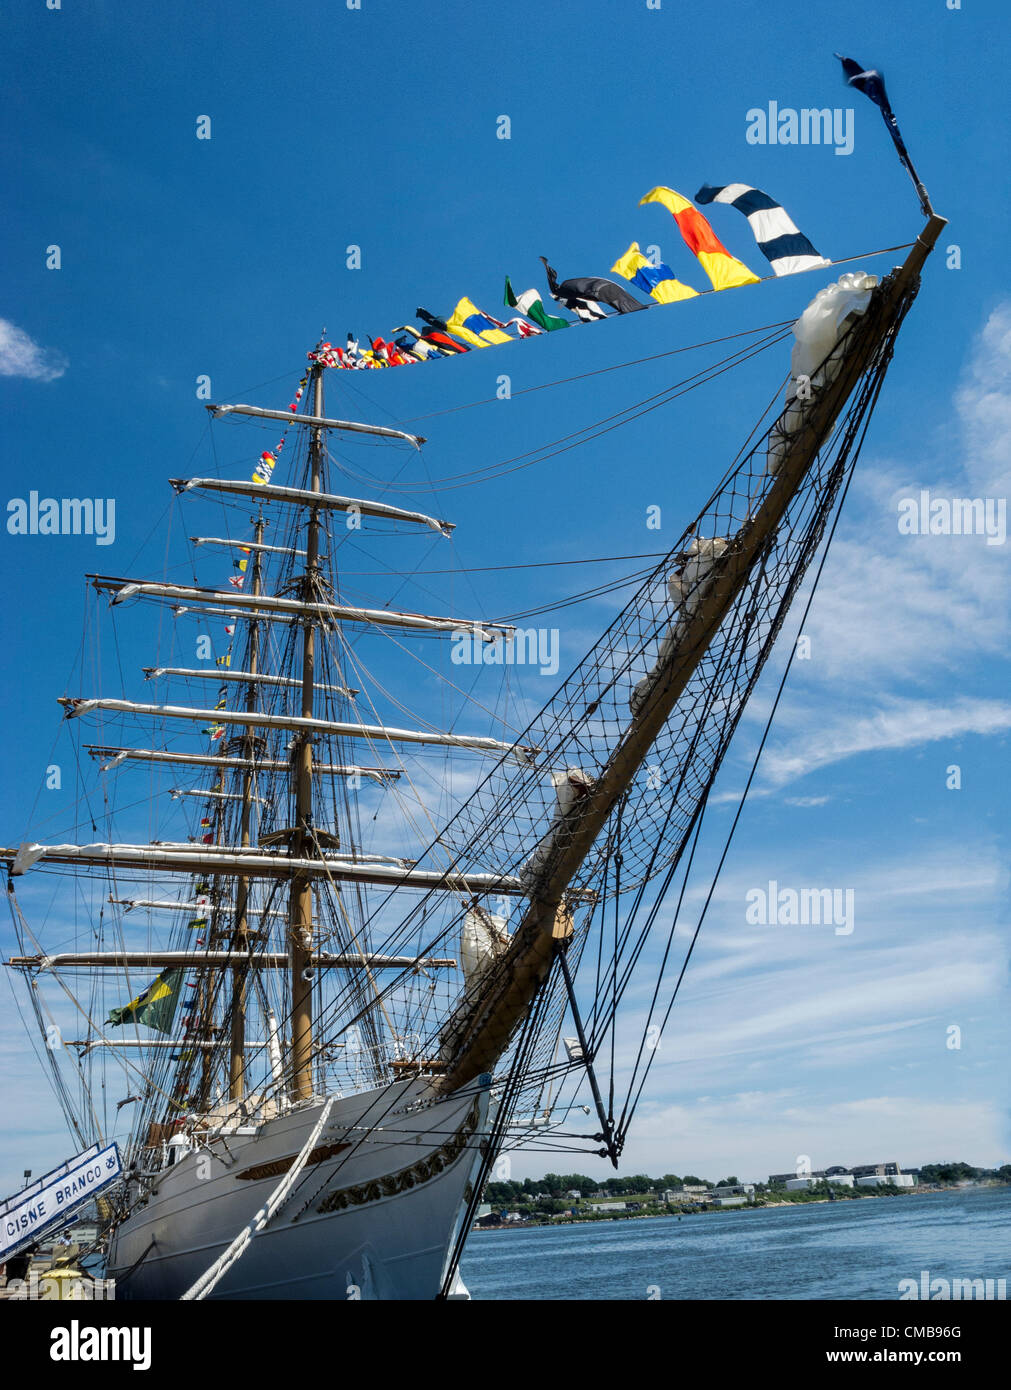 New London, Connecticut, USA - July 9, 2012: Super wide angle view of the bow of the Cisne Branco, which means White - Stock Image